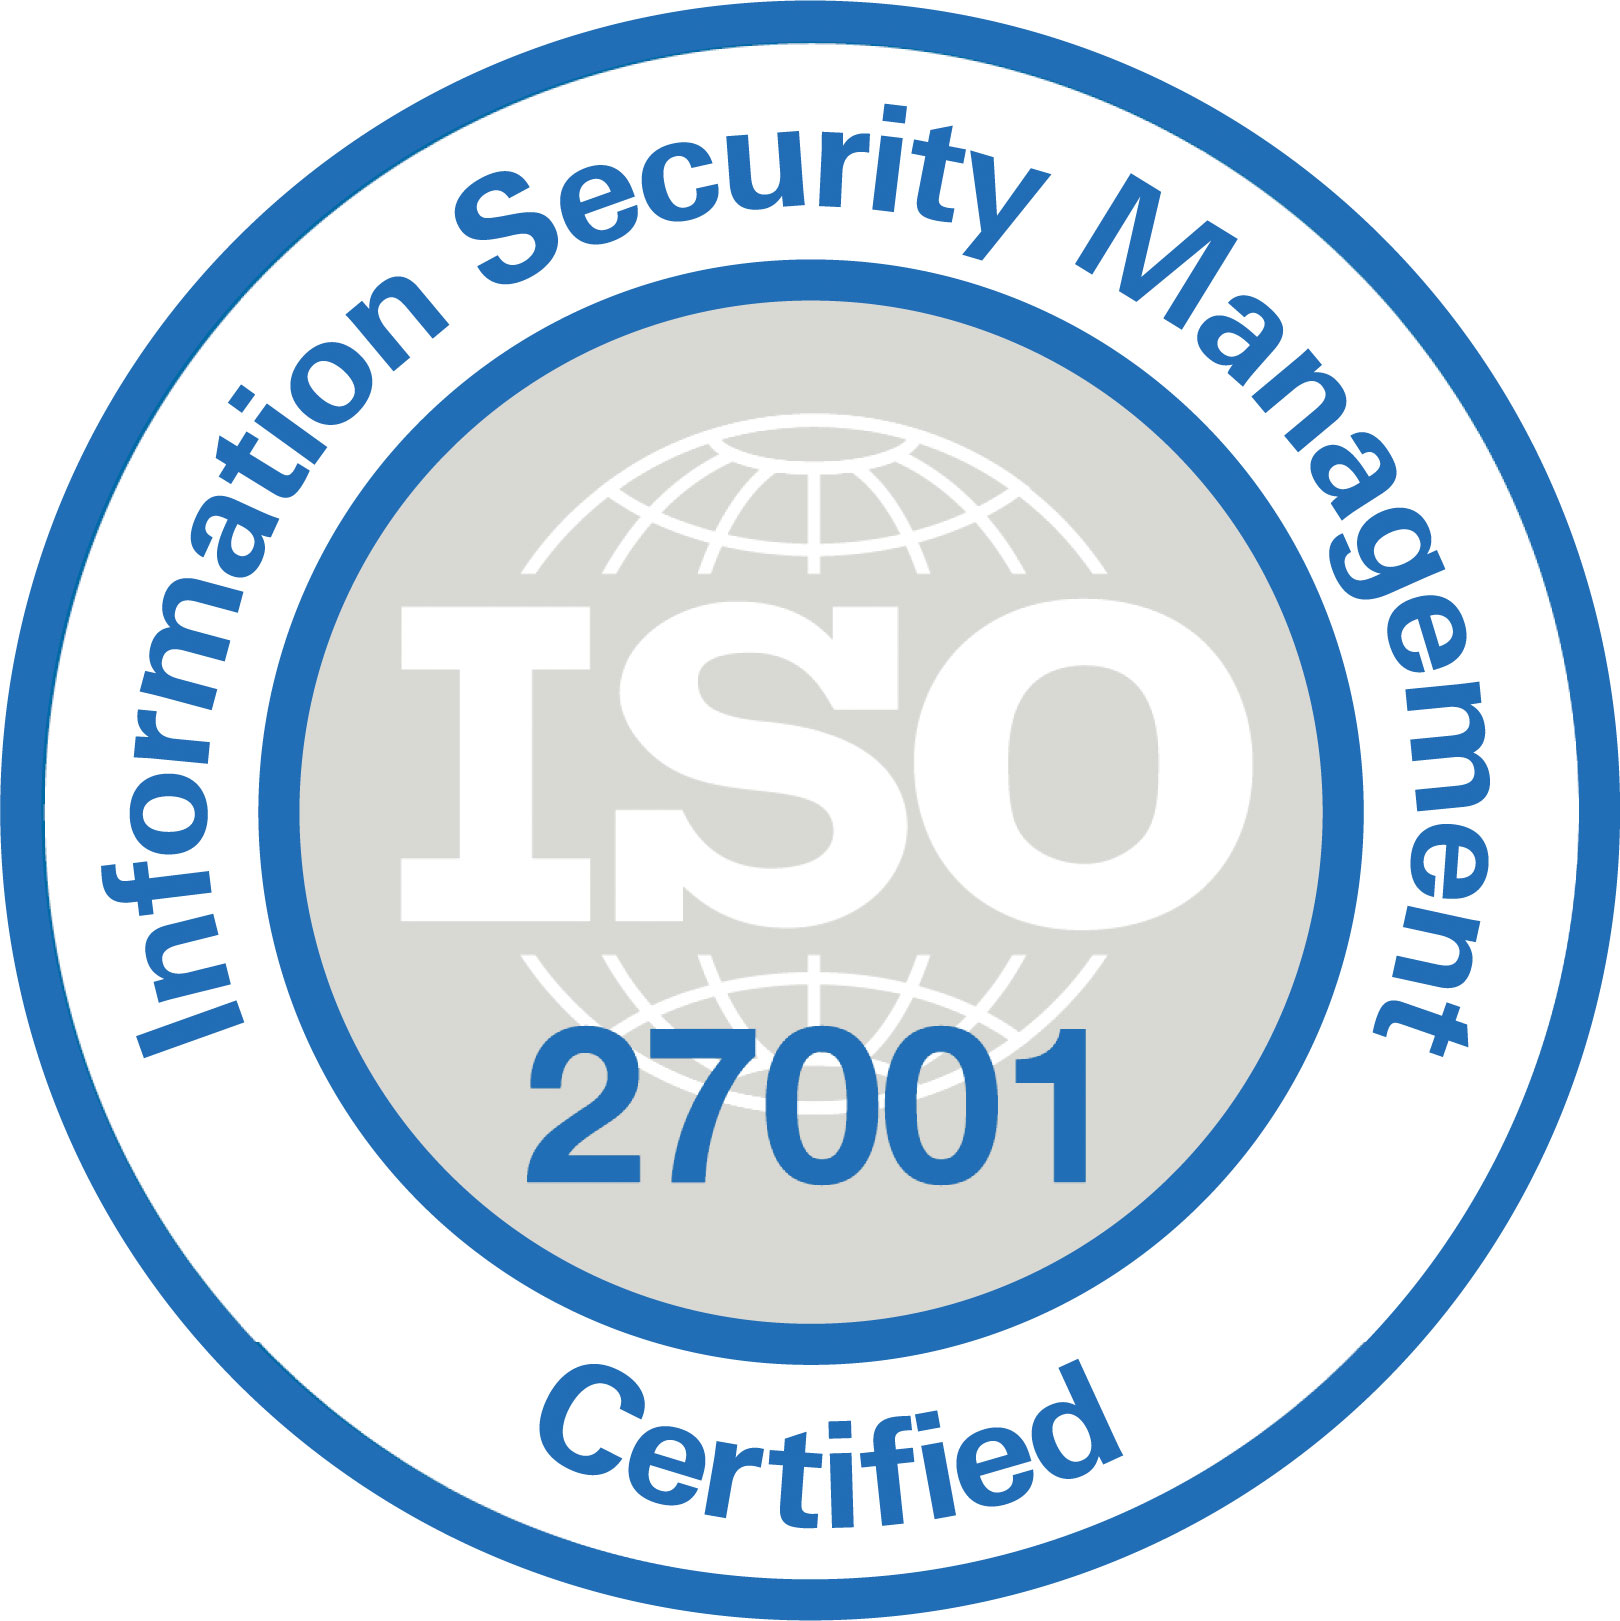 information security management The course covers the principles of applied information security management and is suitable for those who are looking for an in-depth understanding of security.